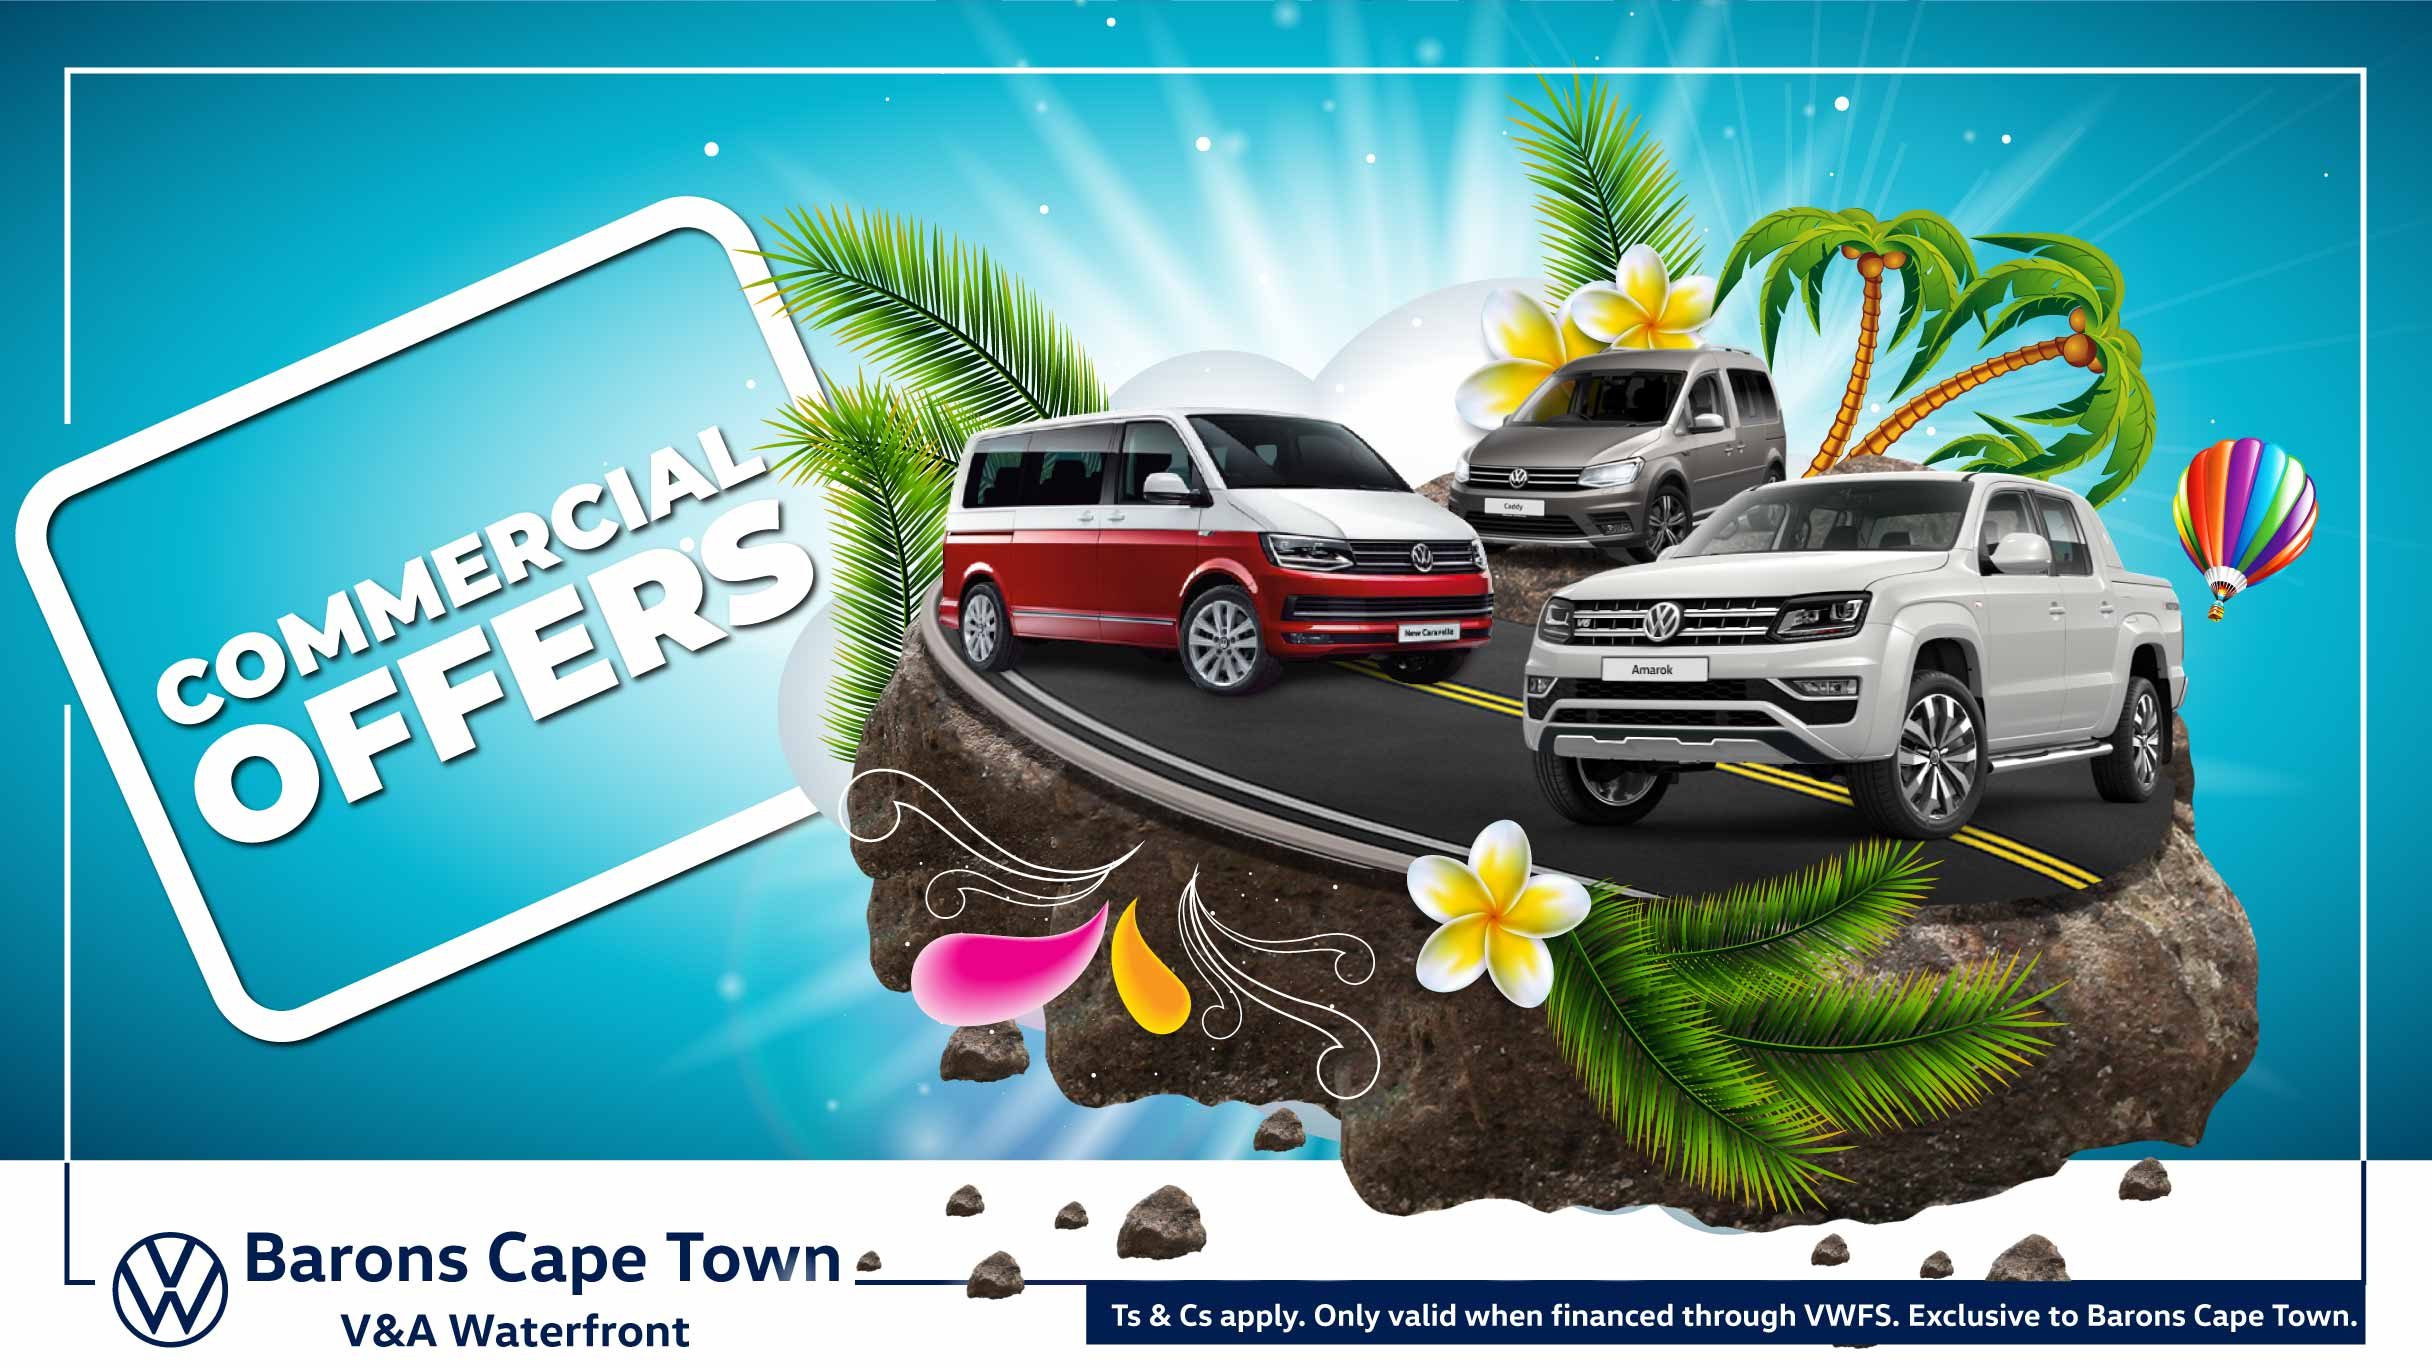 Barons Cape Town commercial vehicle specials